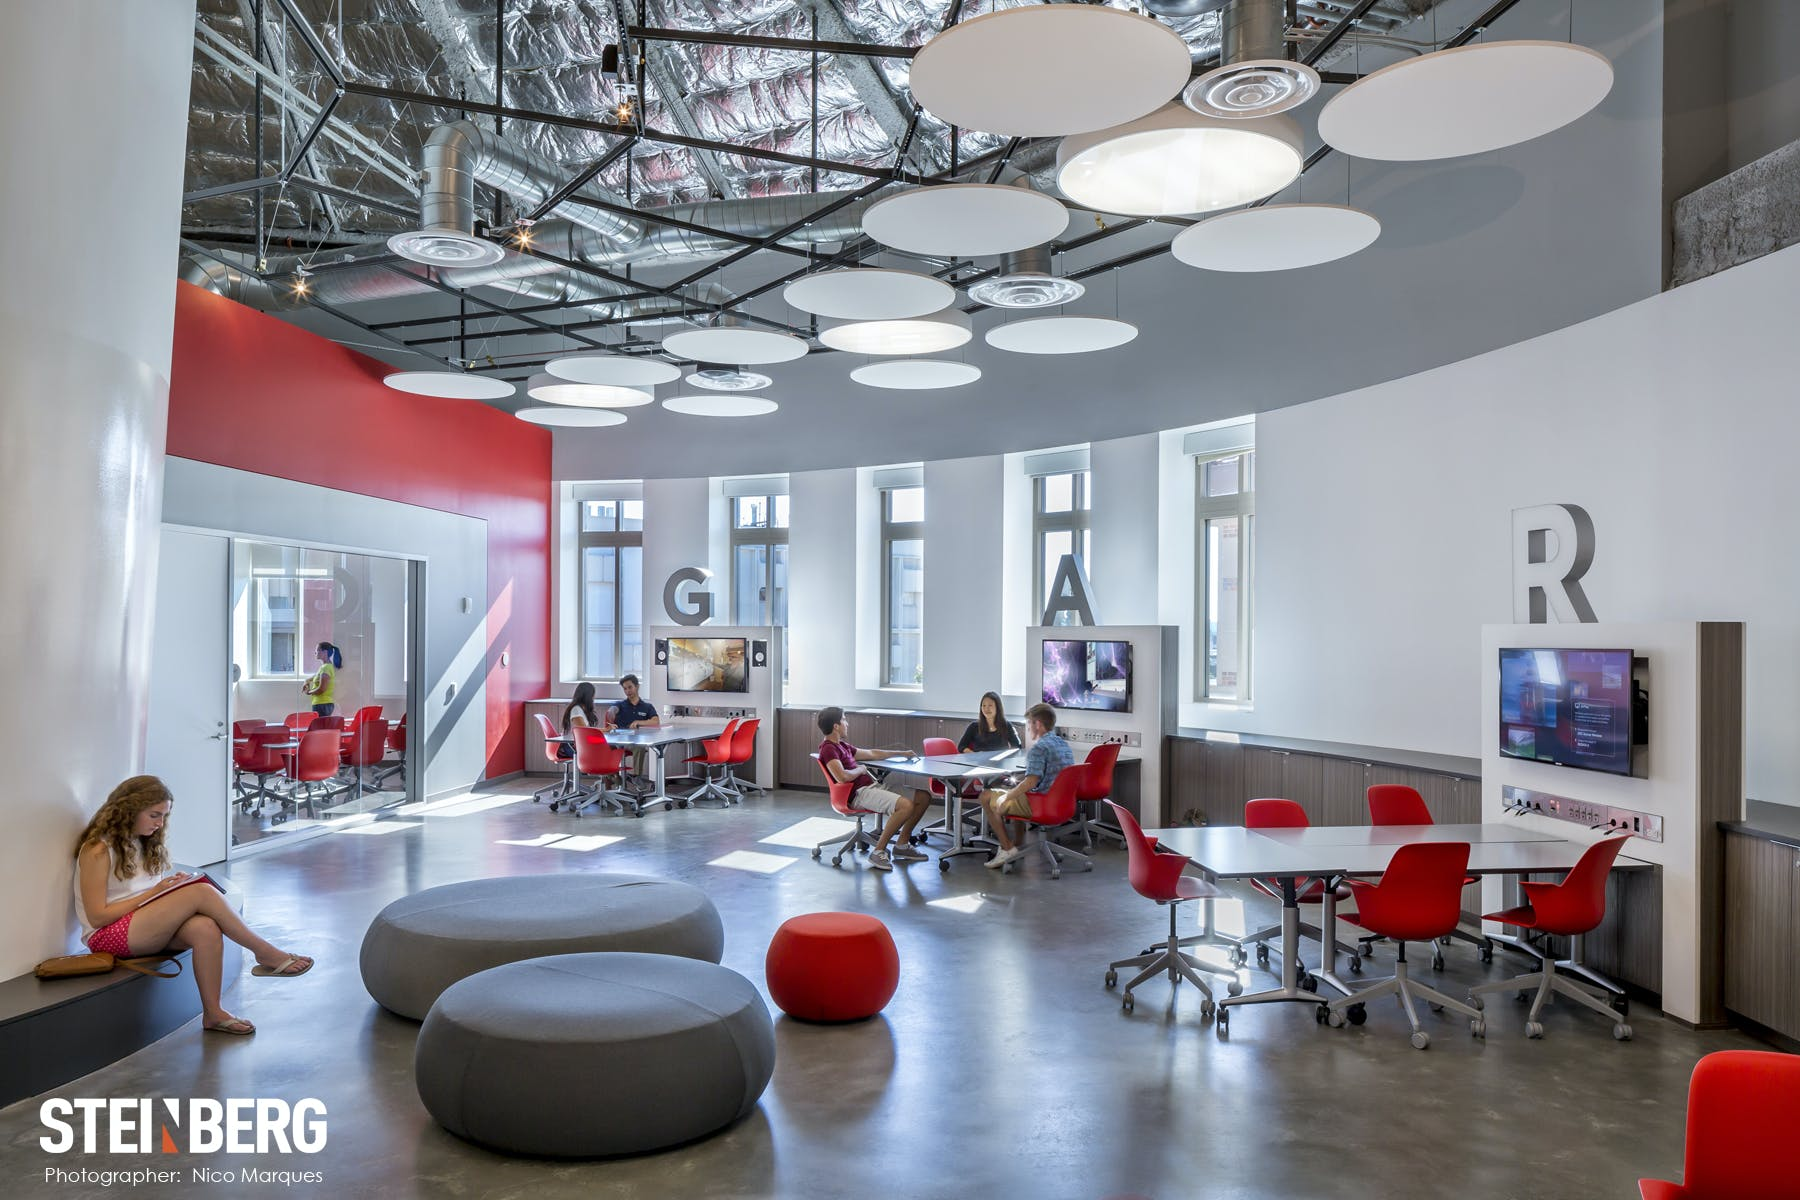 An open-space classroom with red chairs, circular grey ottomans and circular ceiling lights